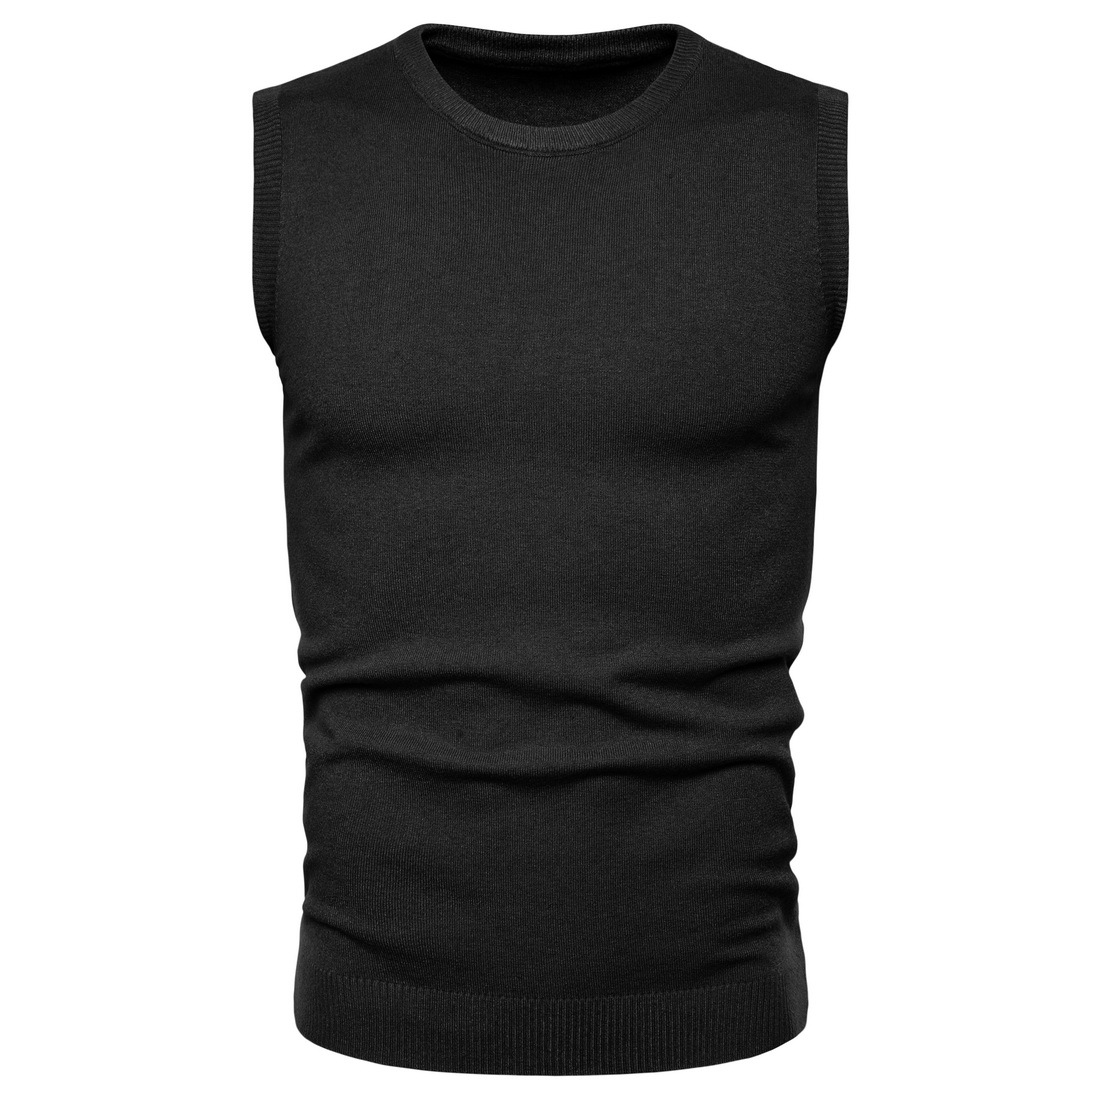 Men's Cotton Sweater Vest Solid Color Cashmere Perfect Quality Brand V-neck Sleeveless Fashion Clothes Knitted Casual Male Coats